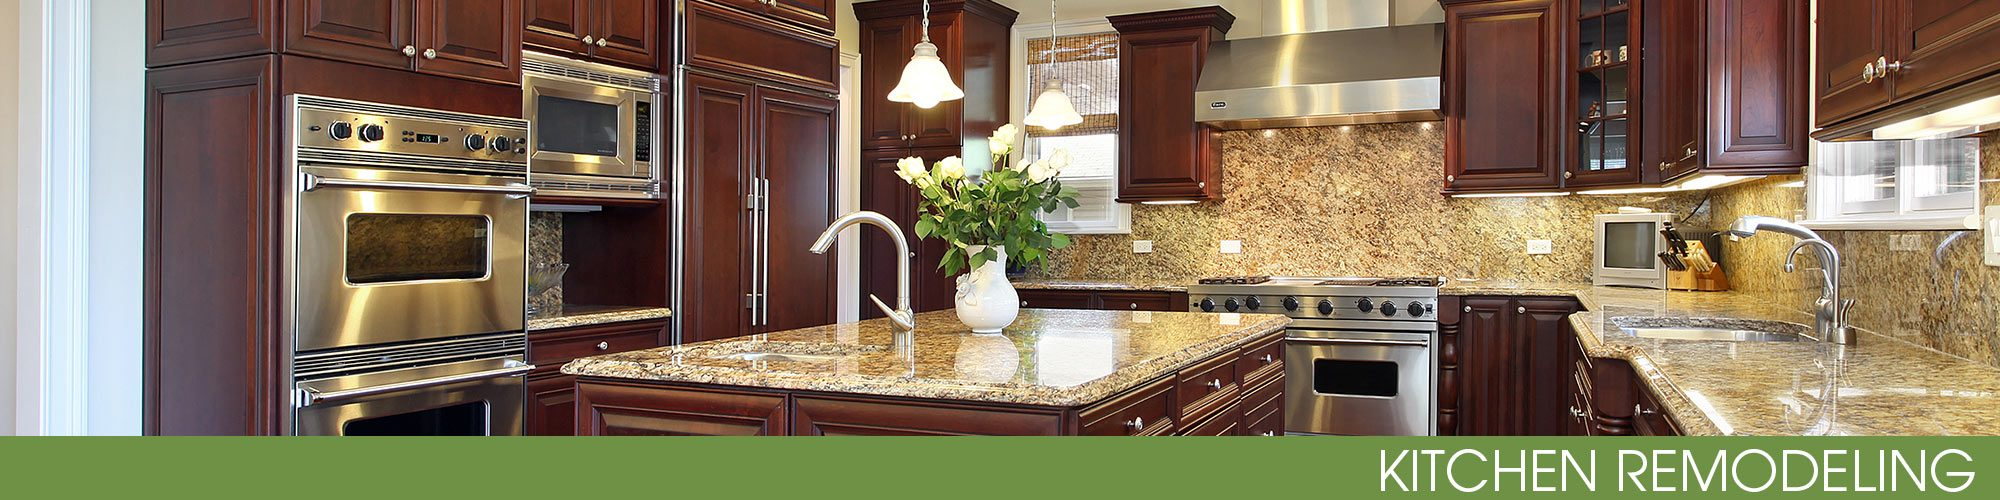 Edwardsville kitchen remodeling